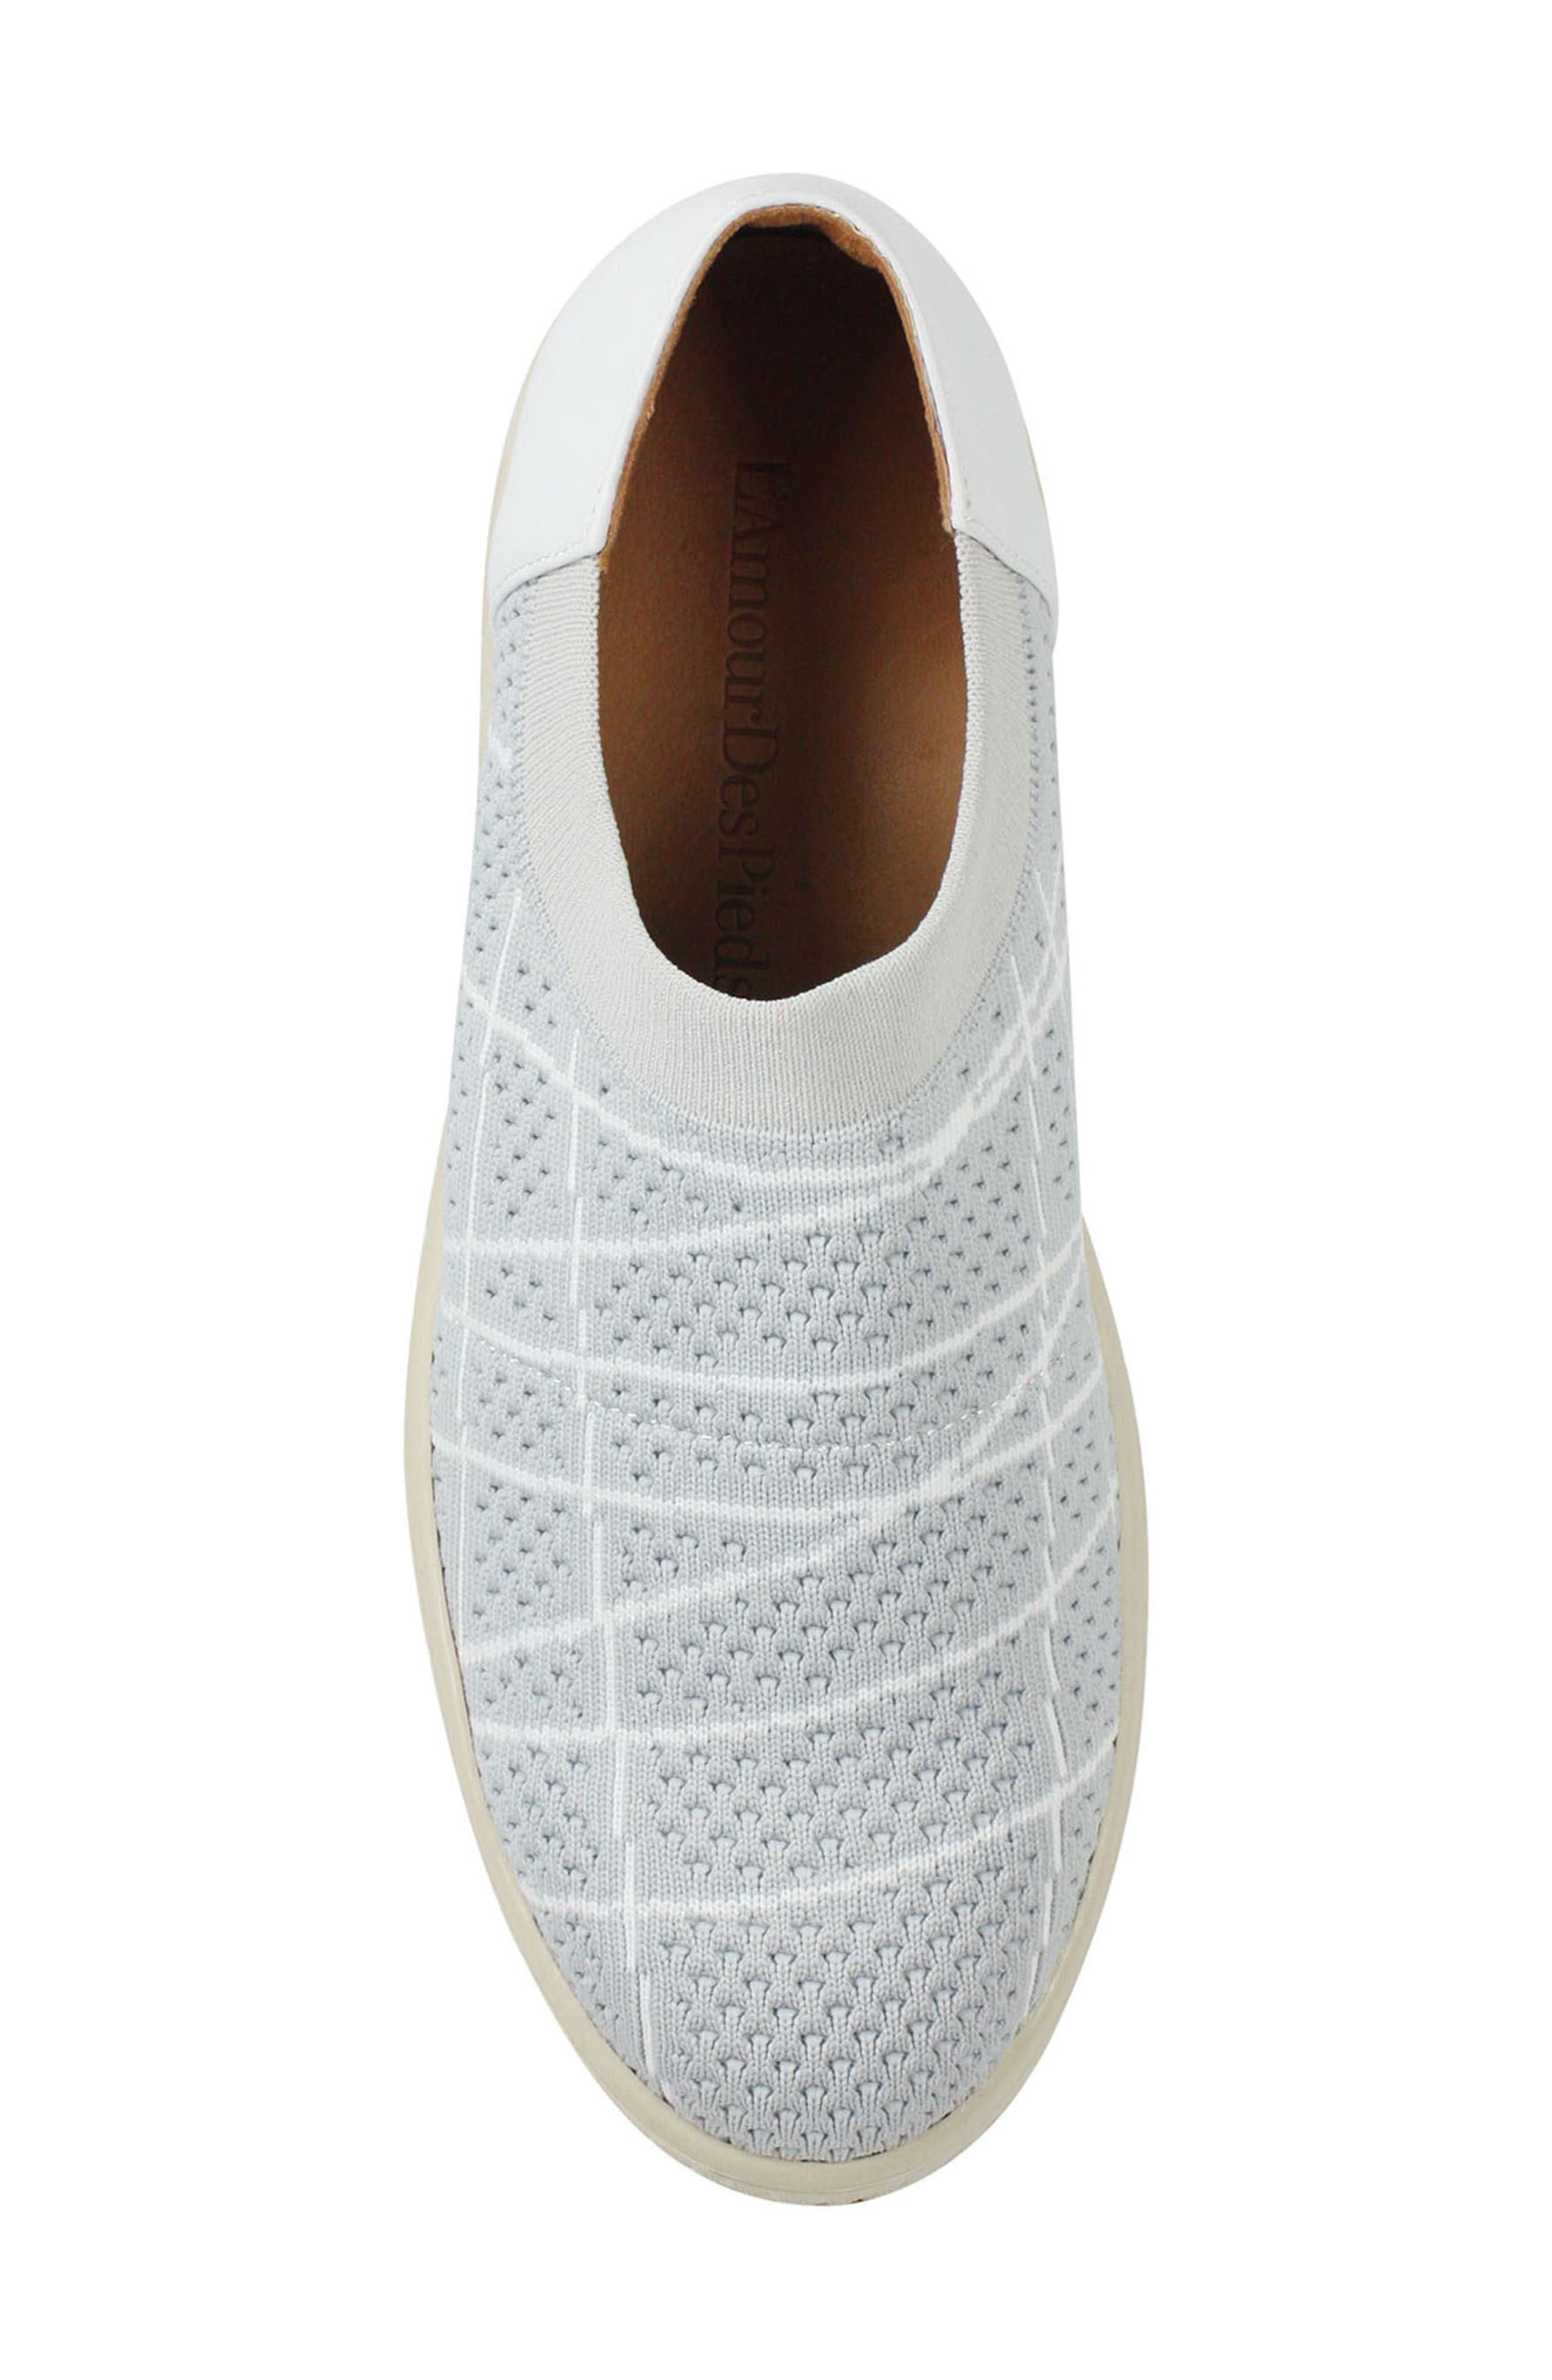 Zohndra Slip-On Sneaker,                             Alternate thumbnail 5, color,                             BEIGE FABRIC